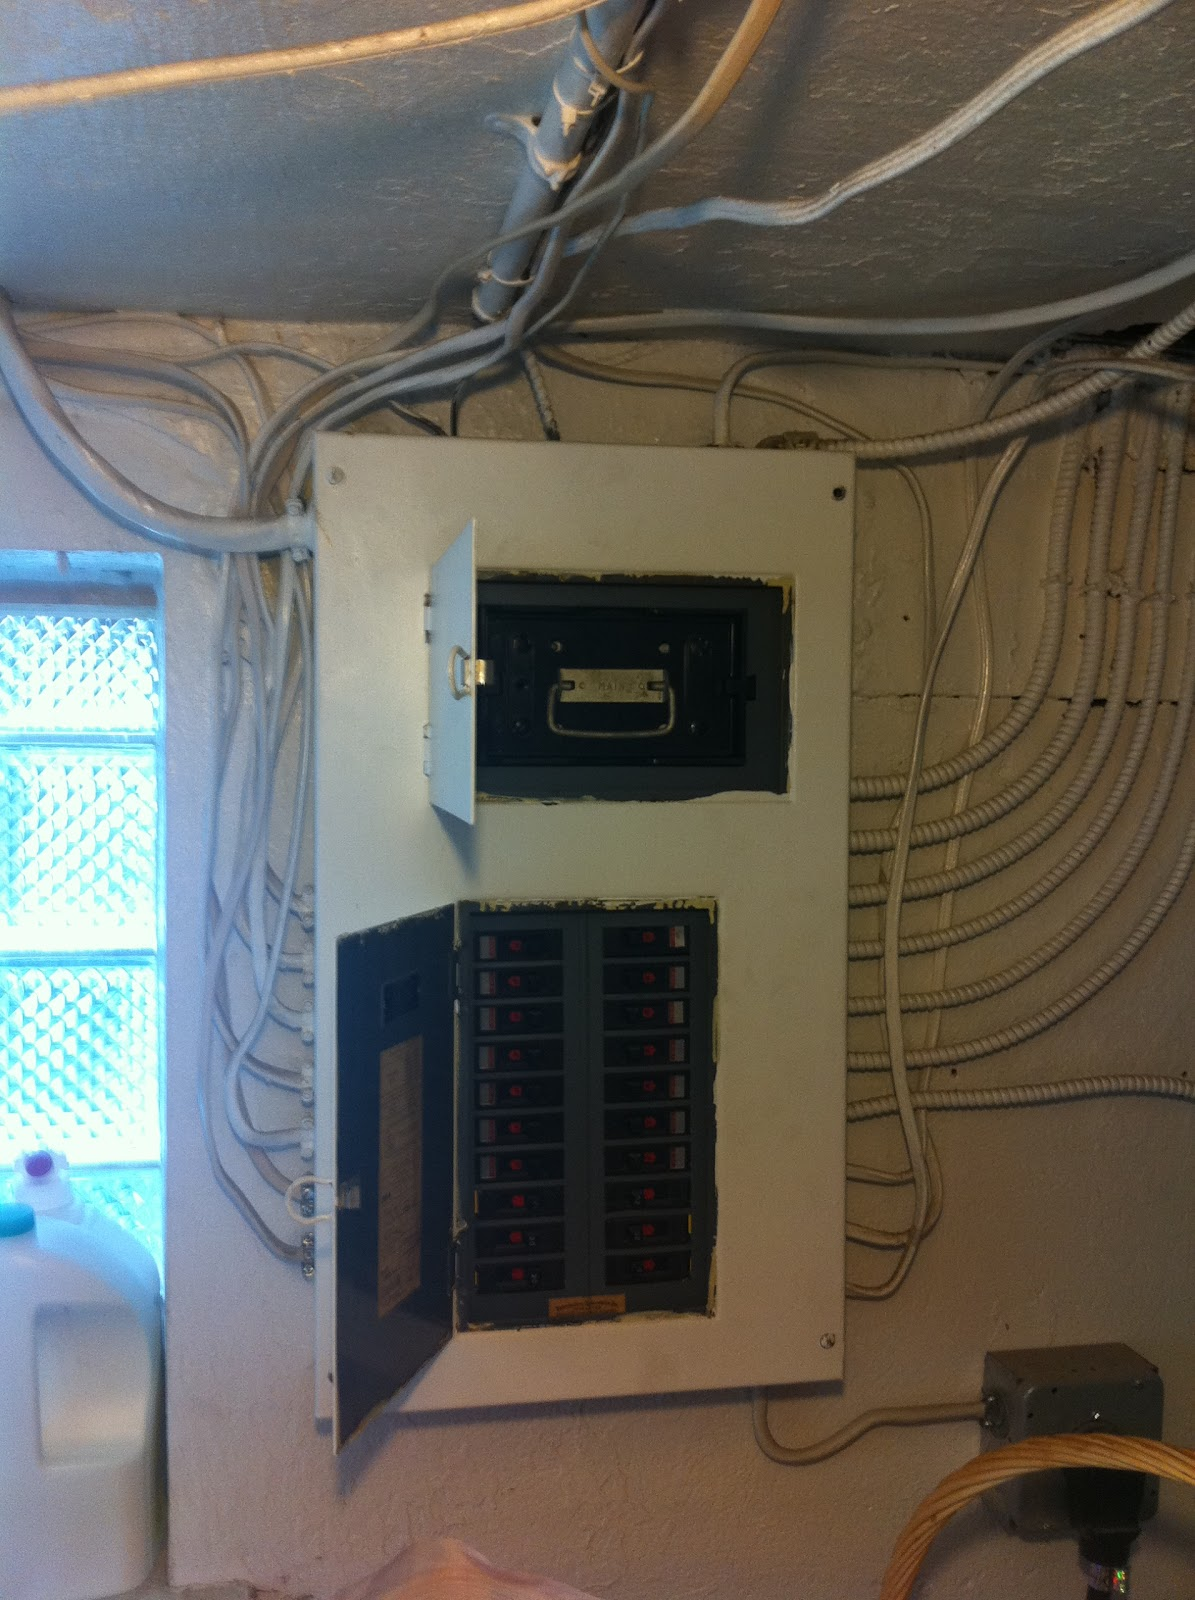 Wadsworth Electrical Panel